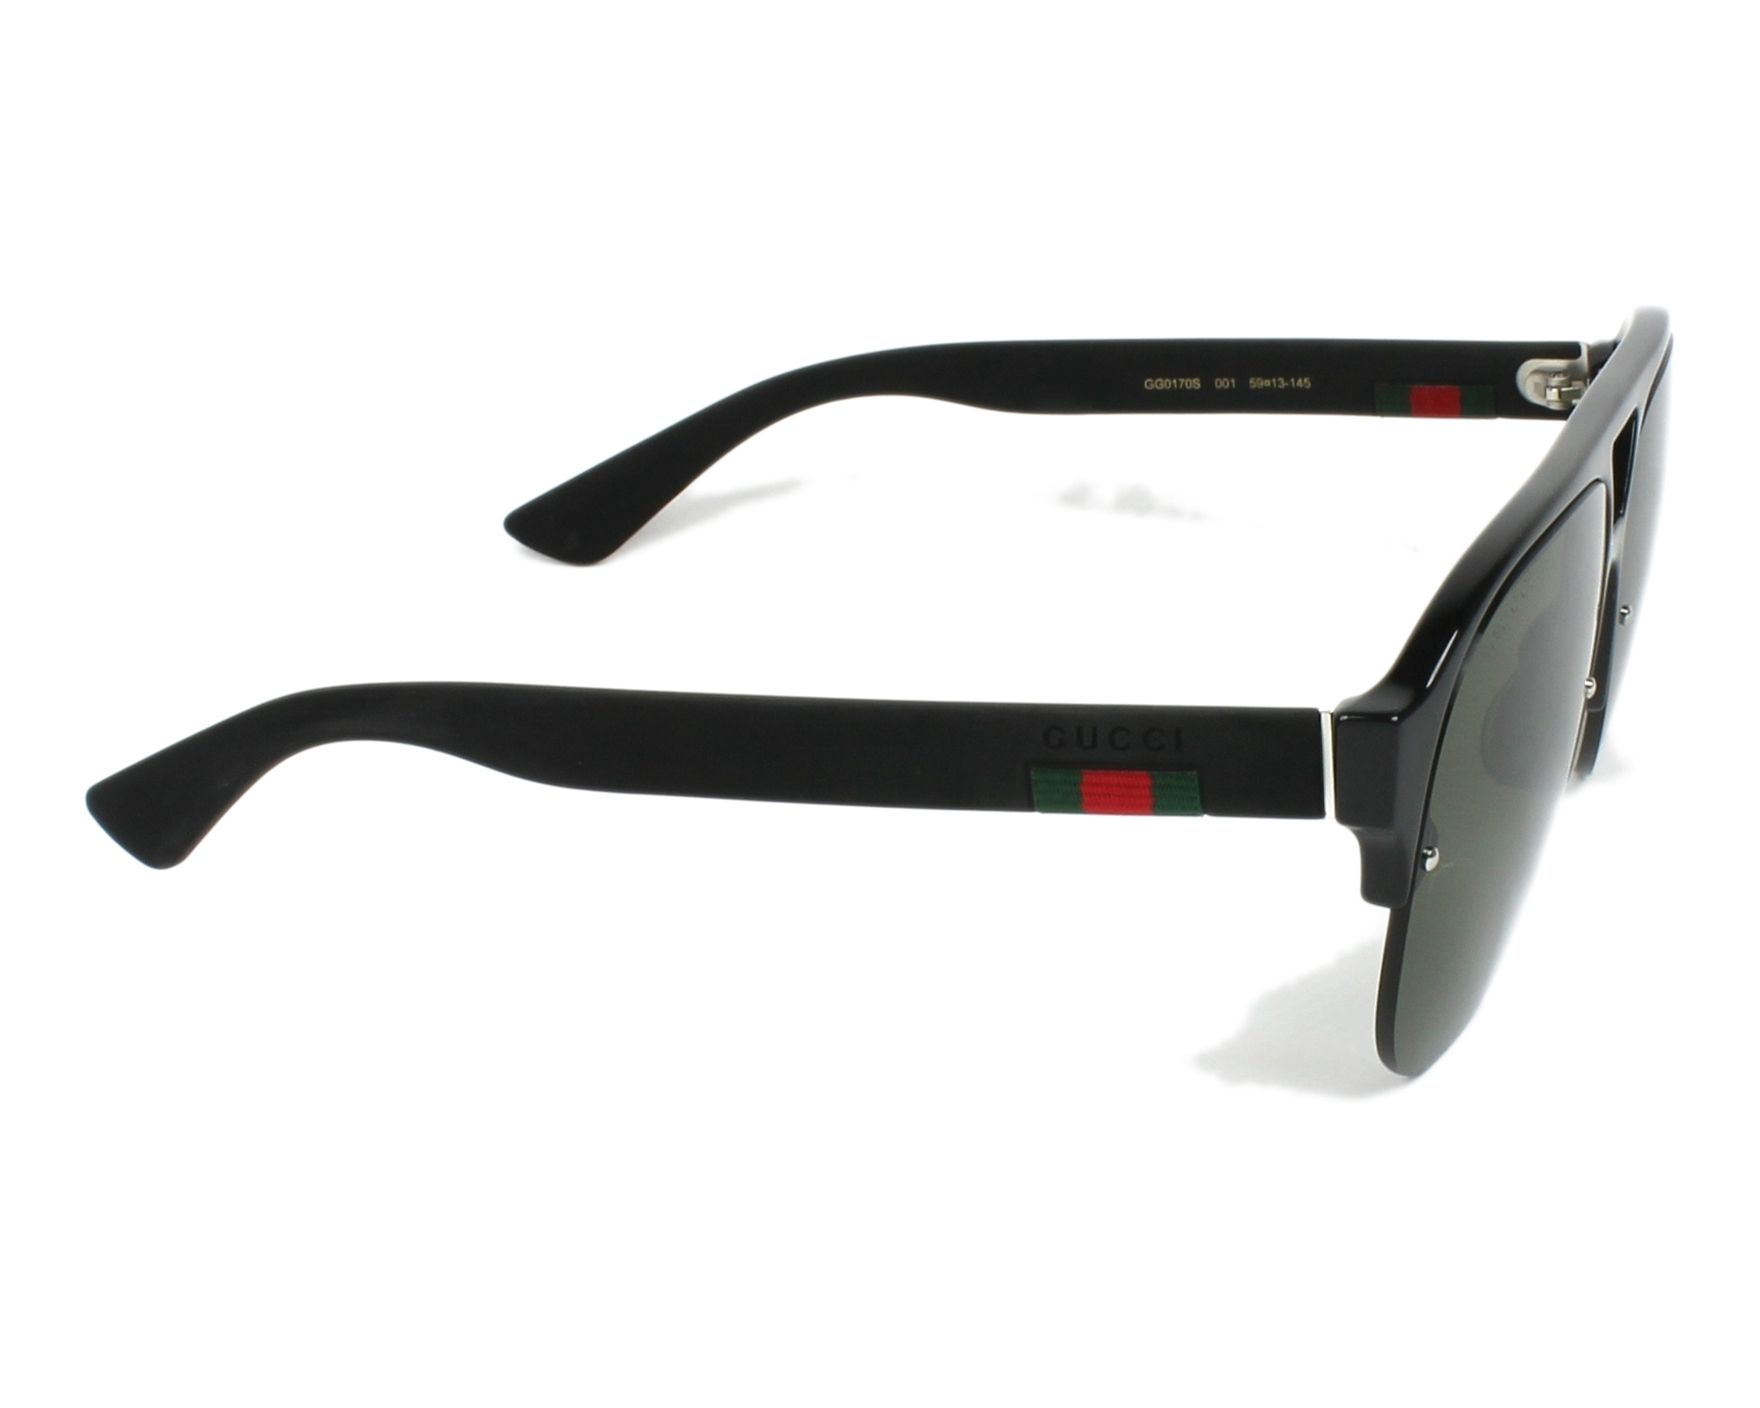 6d5b45d749f Sunglasses Gucci GG-0170-S 001 59-13 Black Black side view